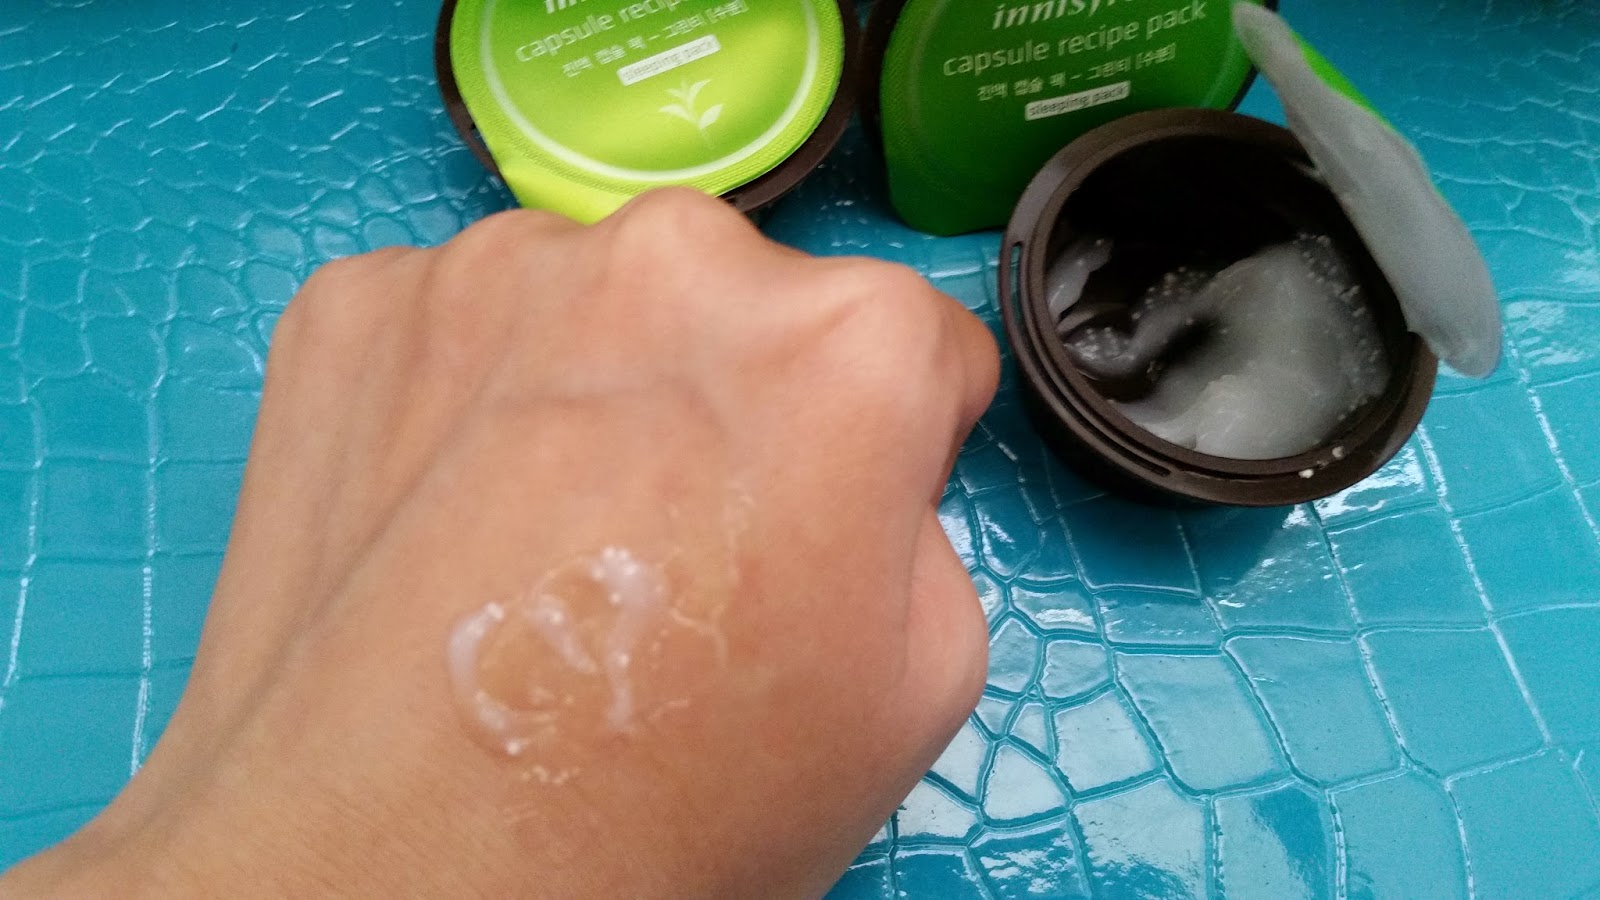 Green Tea Sleeping Pack spread on the back of hand